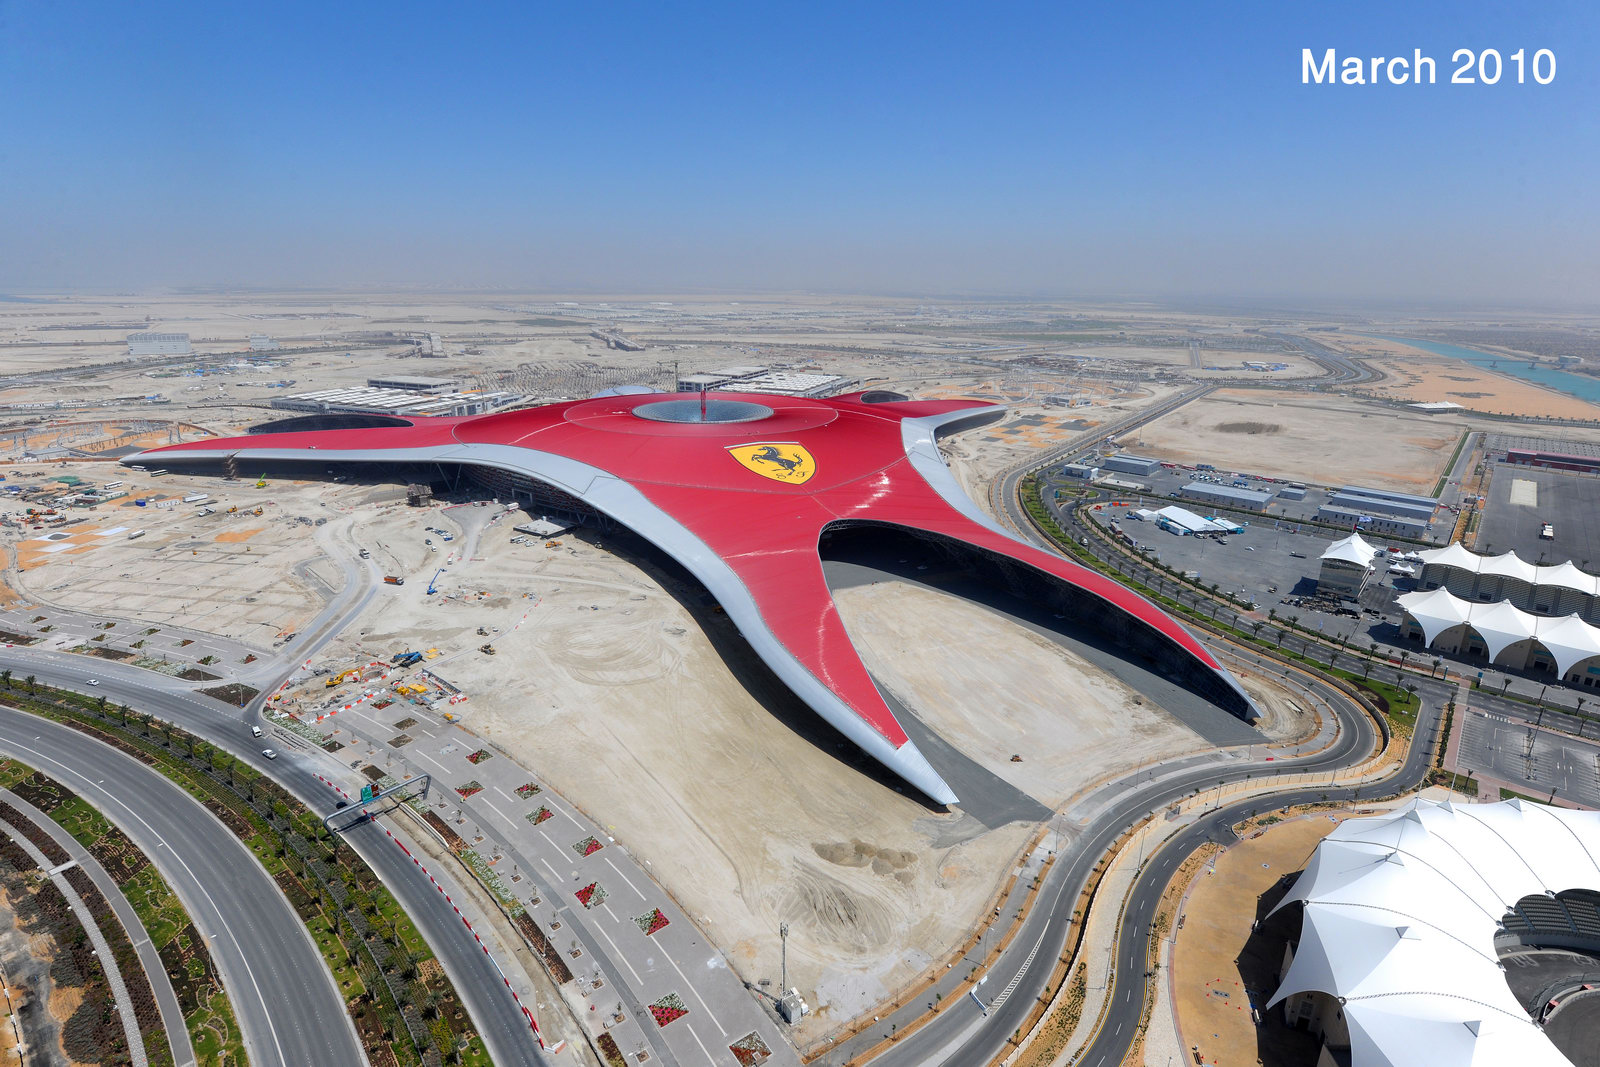 ferrari world abu dhabi opens in october formula rossa rollercoaster unveiled with videos. Black Bedroom Furniture Sets. Home Design Ideas